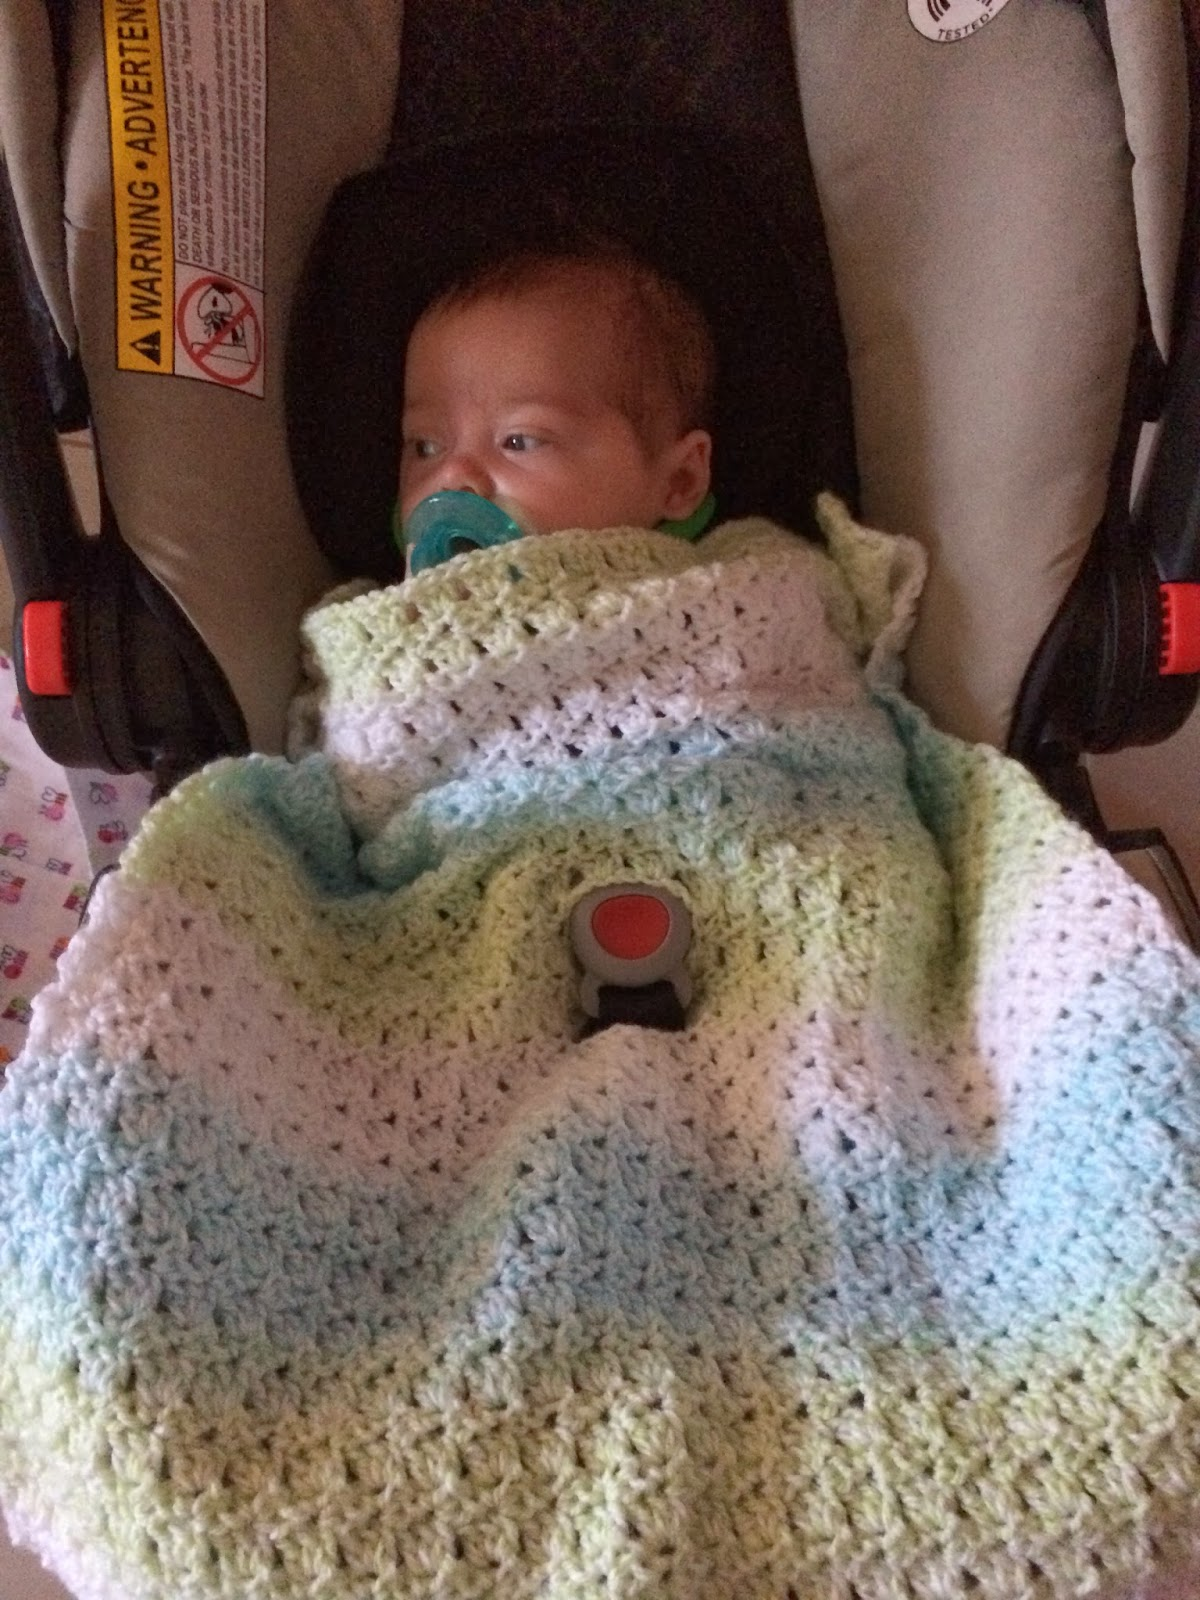 Crochet Baby Car Seat Blanket in Primrose Stitch - Free Pattern ...